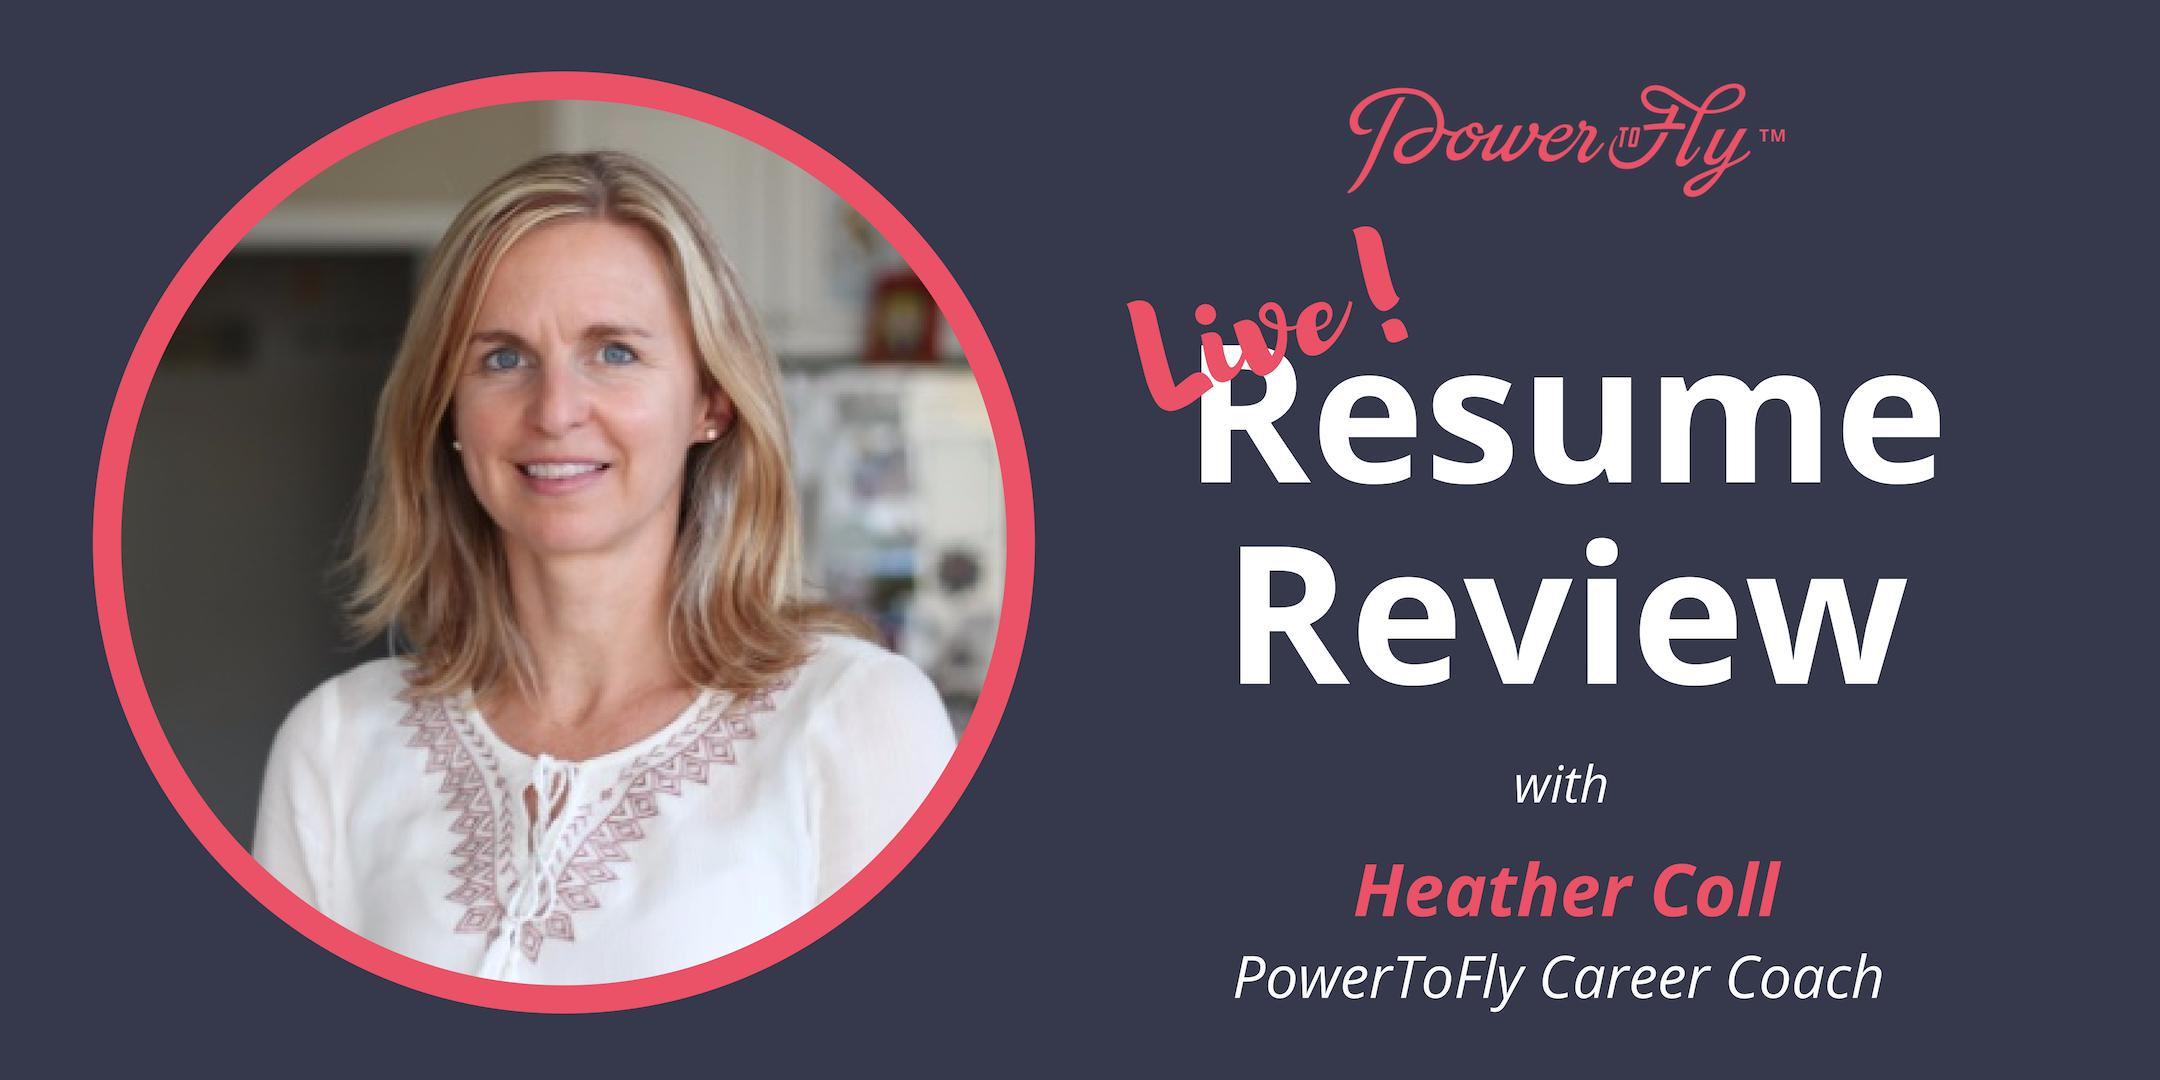 *LIVE* Resume Review With PowerToFly Career Coach 8/1